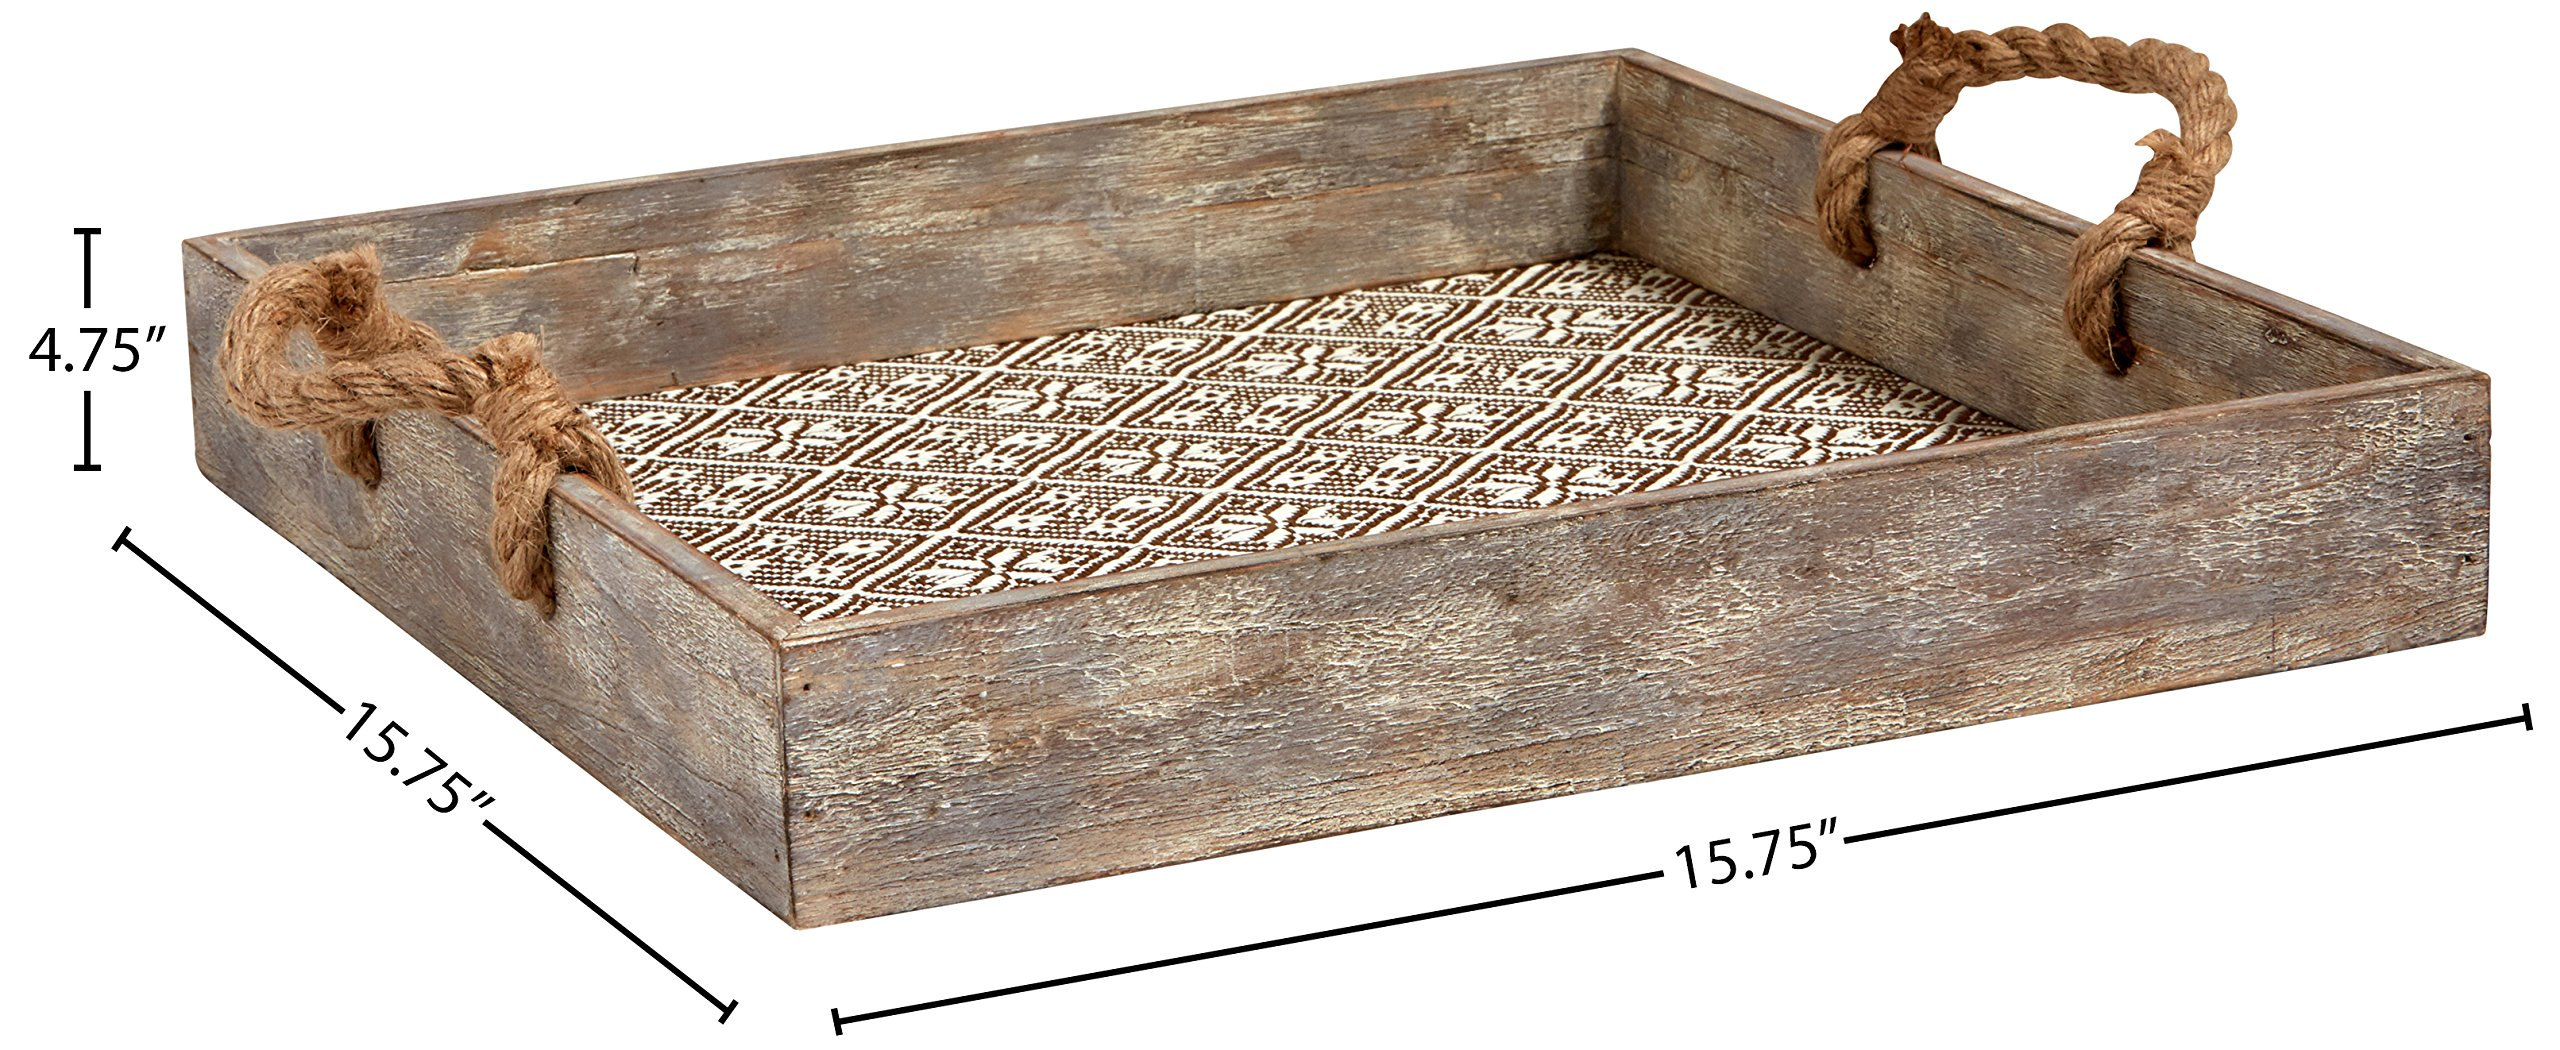 Stone & Beam Vintage Farmhouse Wood and Rope Tray, 15.75''W, White by Stone & Beam (Image #5)